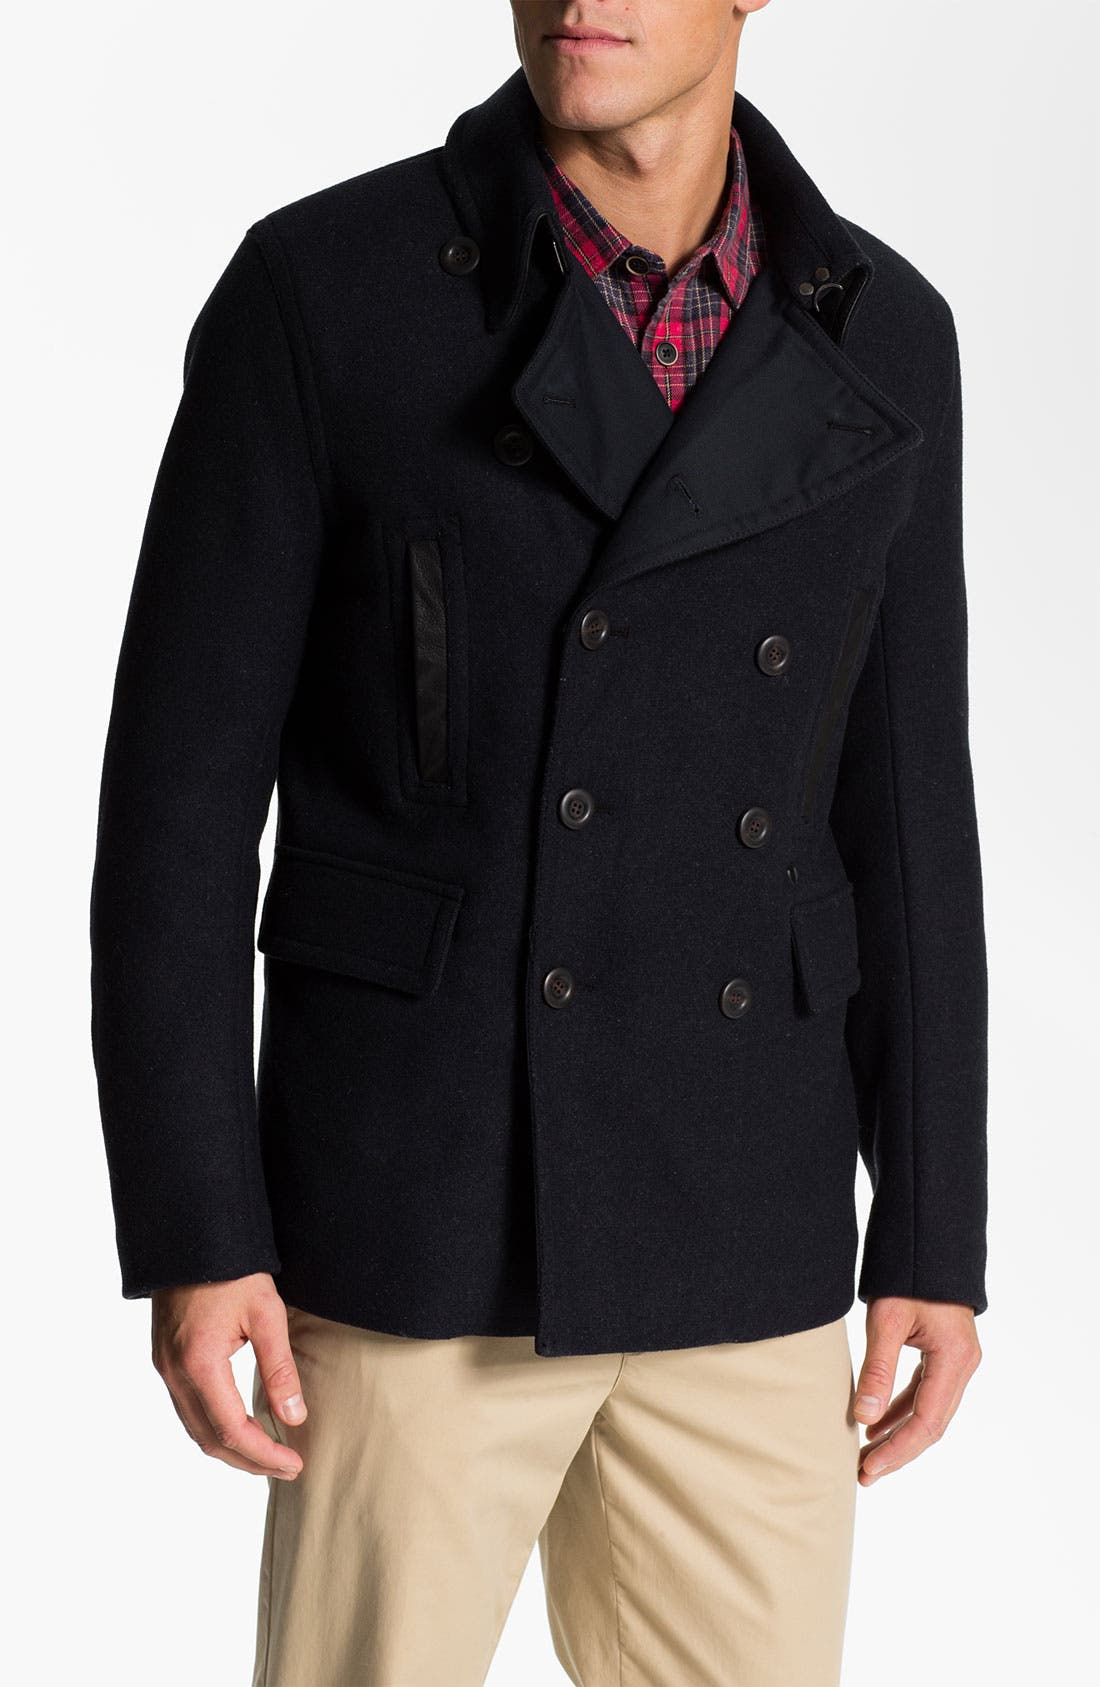 Main Image - PLECTRUM by Ben Sherman Double Breasted Peacoat